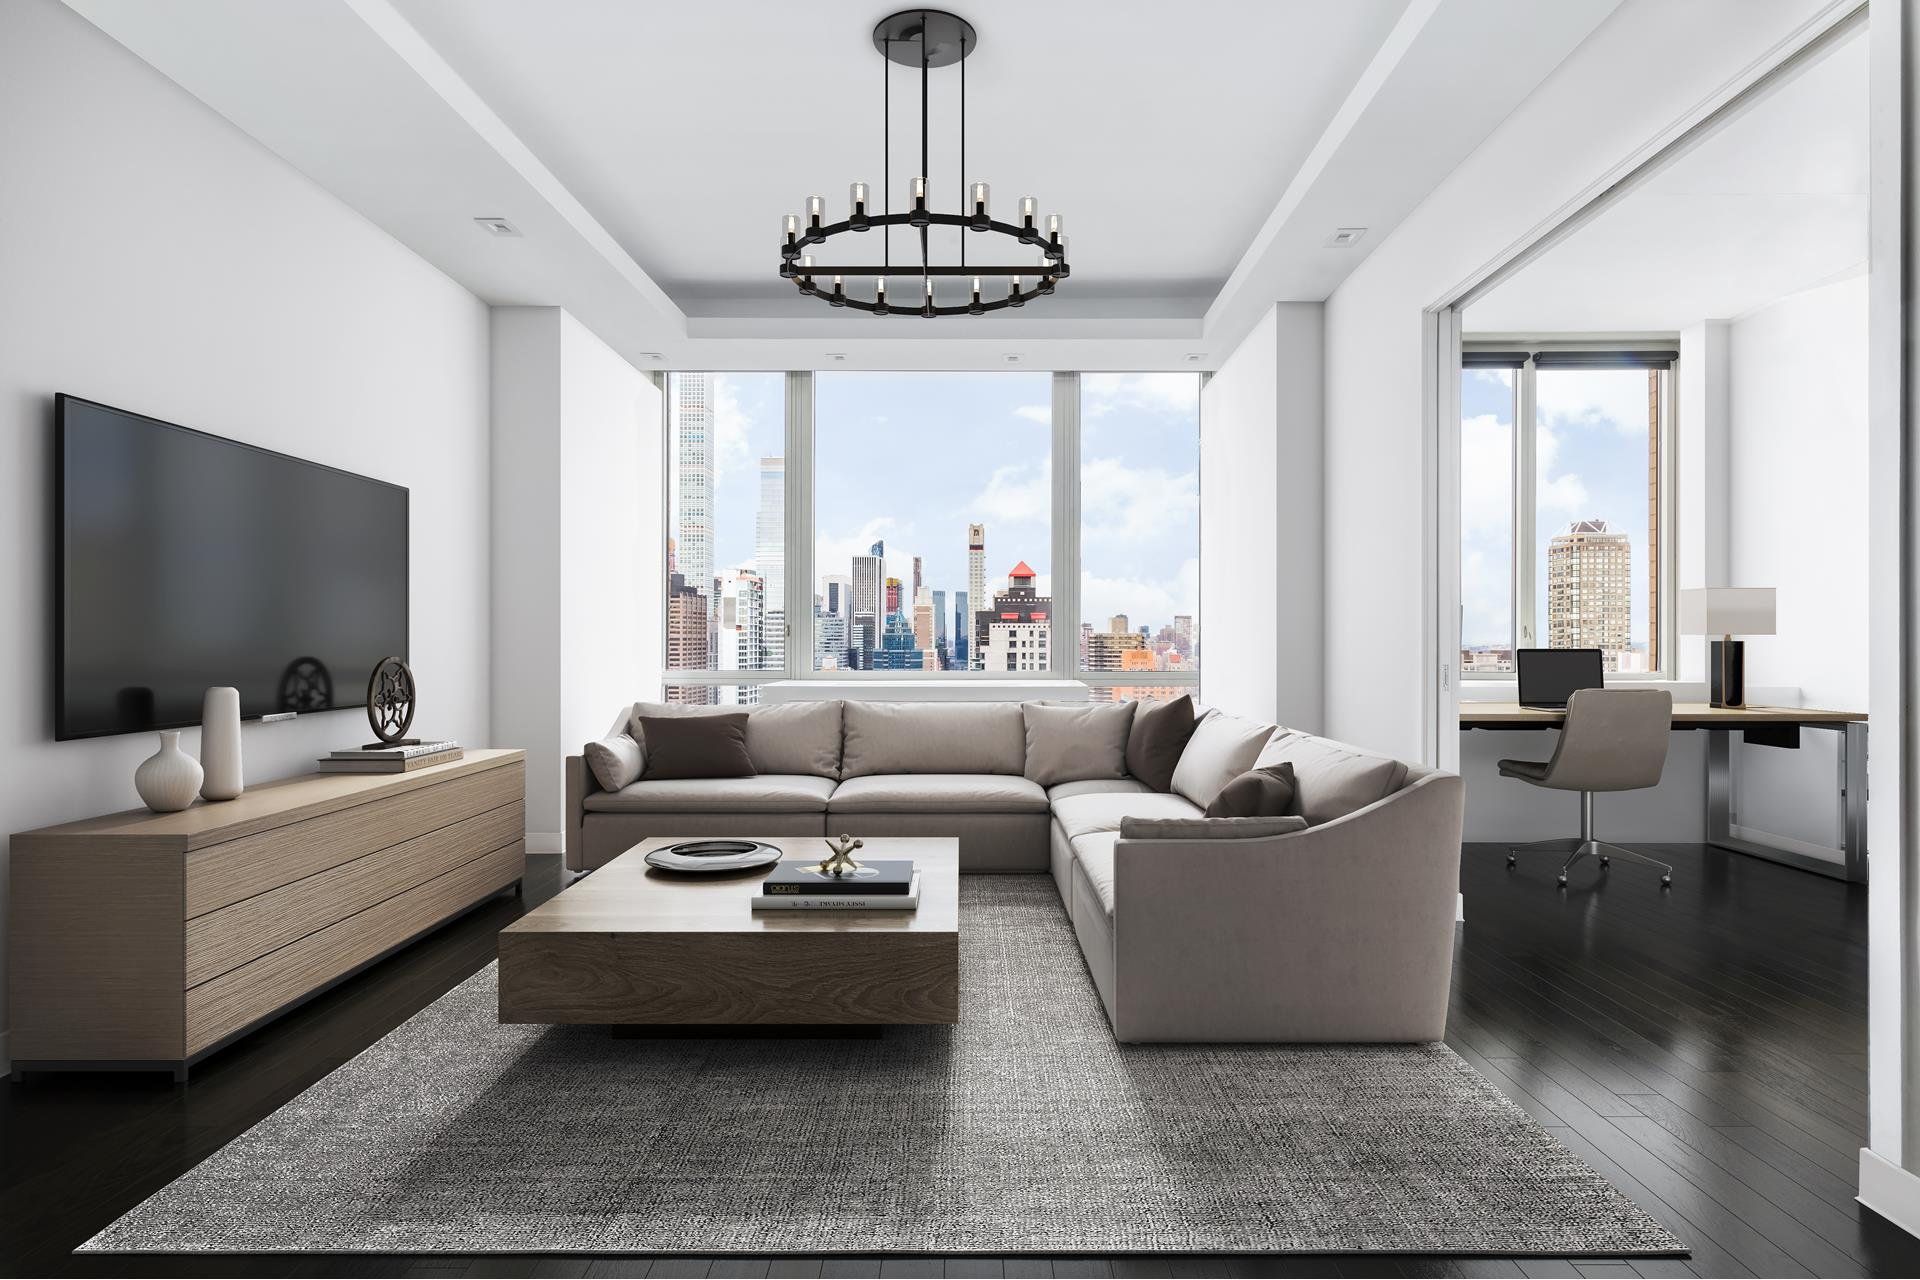 A view of New York City like no otherThis masterfully designed residence features 10-foot floor to-ceiling windows, showcasing panoramic views of New York City. This unique property allows a discerning buyer an opportunity to experience One World Trade Center to Central Park to the George Washington Bridge and more, from sunset to sunrise.With over 1,500 square-feet of living space, enjoy the expansiveness of 3 bedrooms, 3 bathrooms and a gracious living room with separate dining space. The third bedroom is located just off the living space, which allows an opportunity to customize the room to suit your needs. The walk-through kitchen offers ample storage, stainless steel appliances and granite counters.Spacious, long hallways on either end of the living room allow for privacy in the main bedrooms. The bedroom on the South side of the apartment is flanked by natural light from the double exposure to the South and the West, and includes an en-suite bath making this a luxurious guest space. At the other side of the residence, the master suite has expansive views West towards Central Park. The suite features a large walk-in closet and several additional custom closets offering ample space. The en-suite bath has a full standing shower, separate soaking tub, double-sink vanity and additional storage.This home also features an additional full, third bathroom adjacent to the main living space, encased in Marble with a full standing shower. This smart-residence offers a fully integrated audio, lighting, and electric shade system controlled by Lutron. Design details and amenities include wide-plank ebony wood floors, an in-unit vented washer/dryer and additional closet space throughout.This full-service luxury condominium features a roof deck, fitness center, children's playroom, central laundry room, garage, courtyard and concierge.Call or email us to set up a private showing.